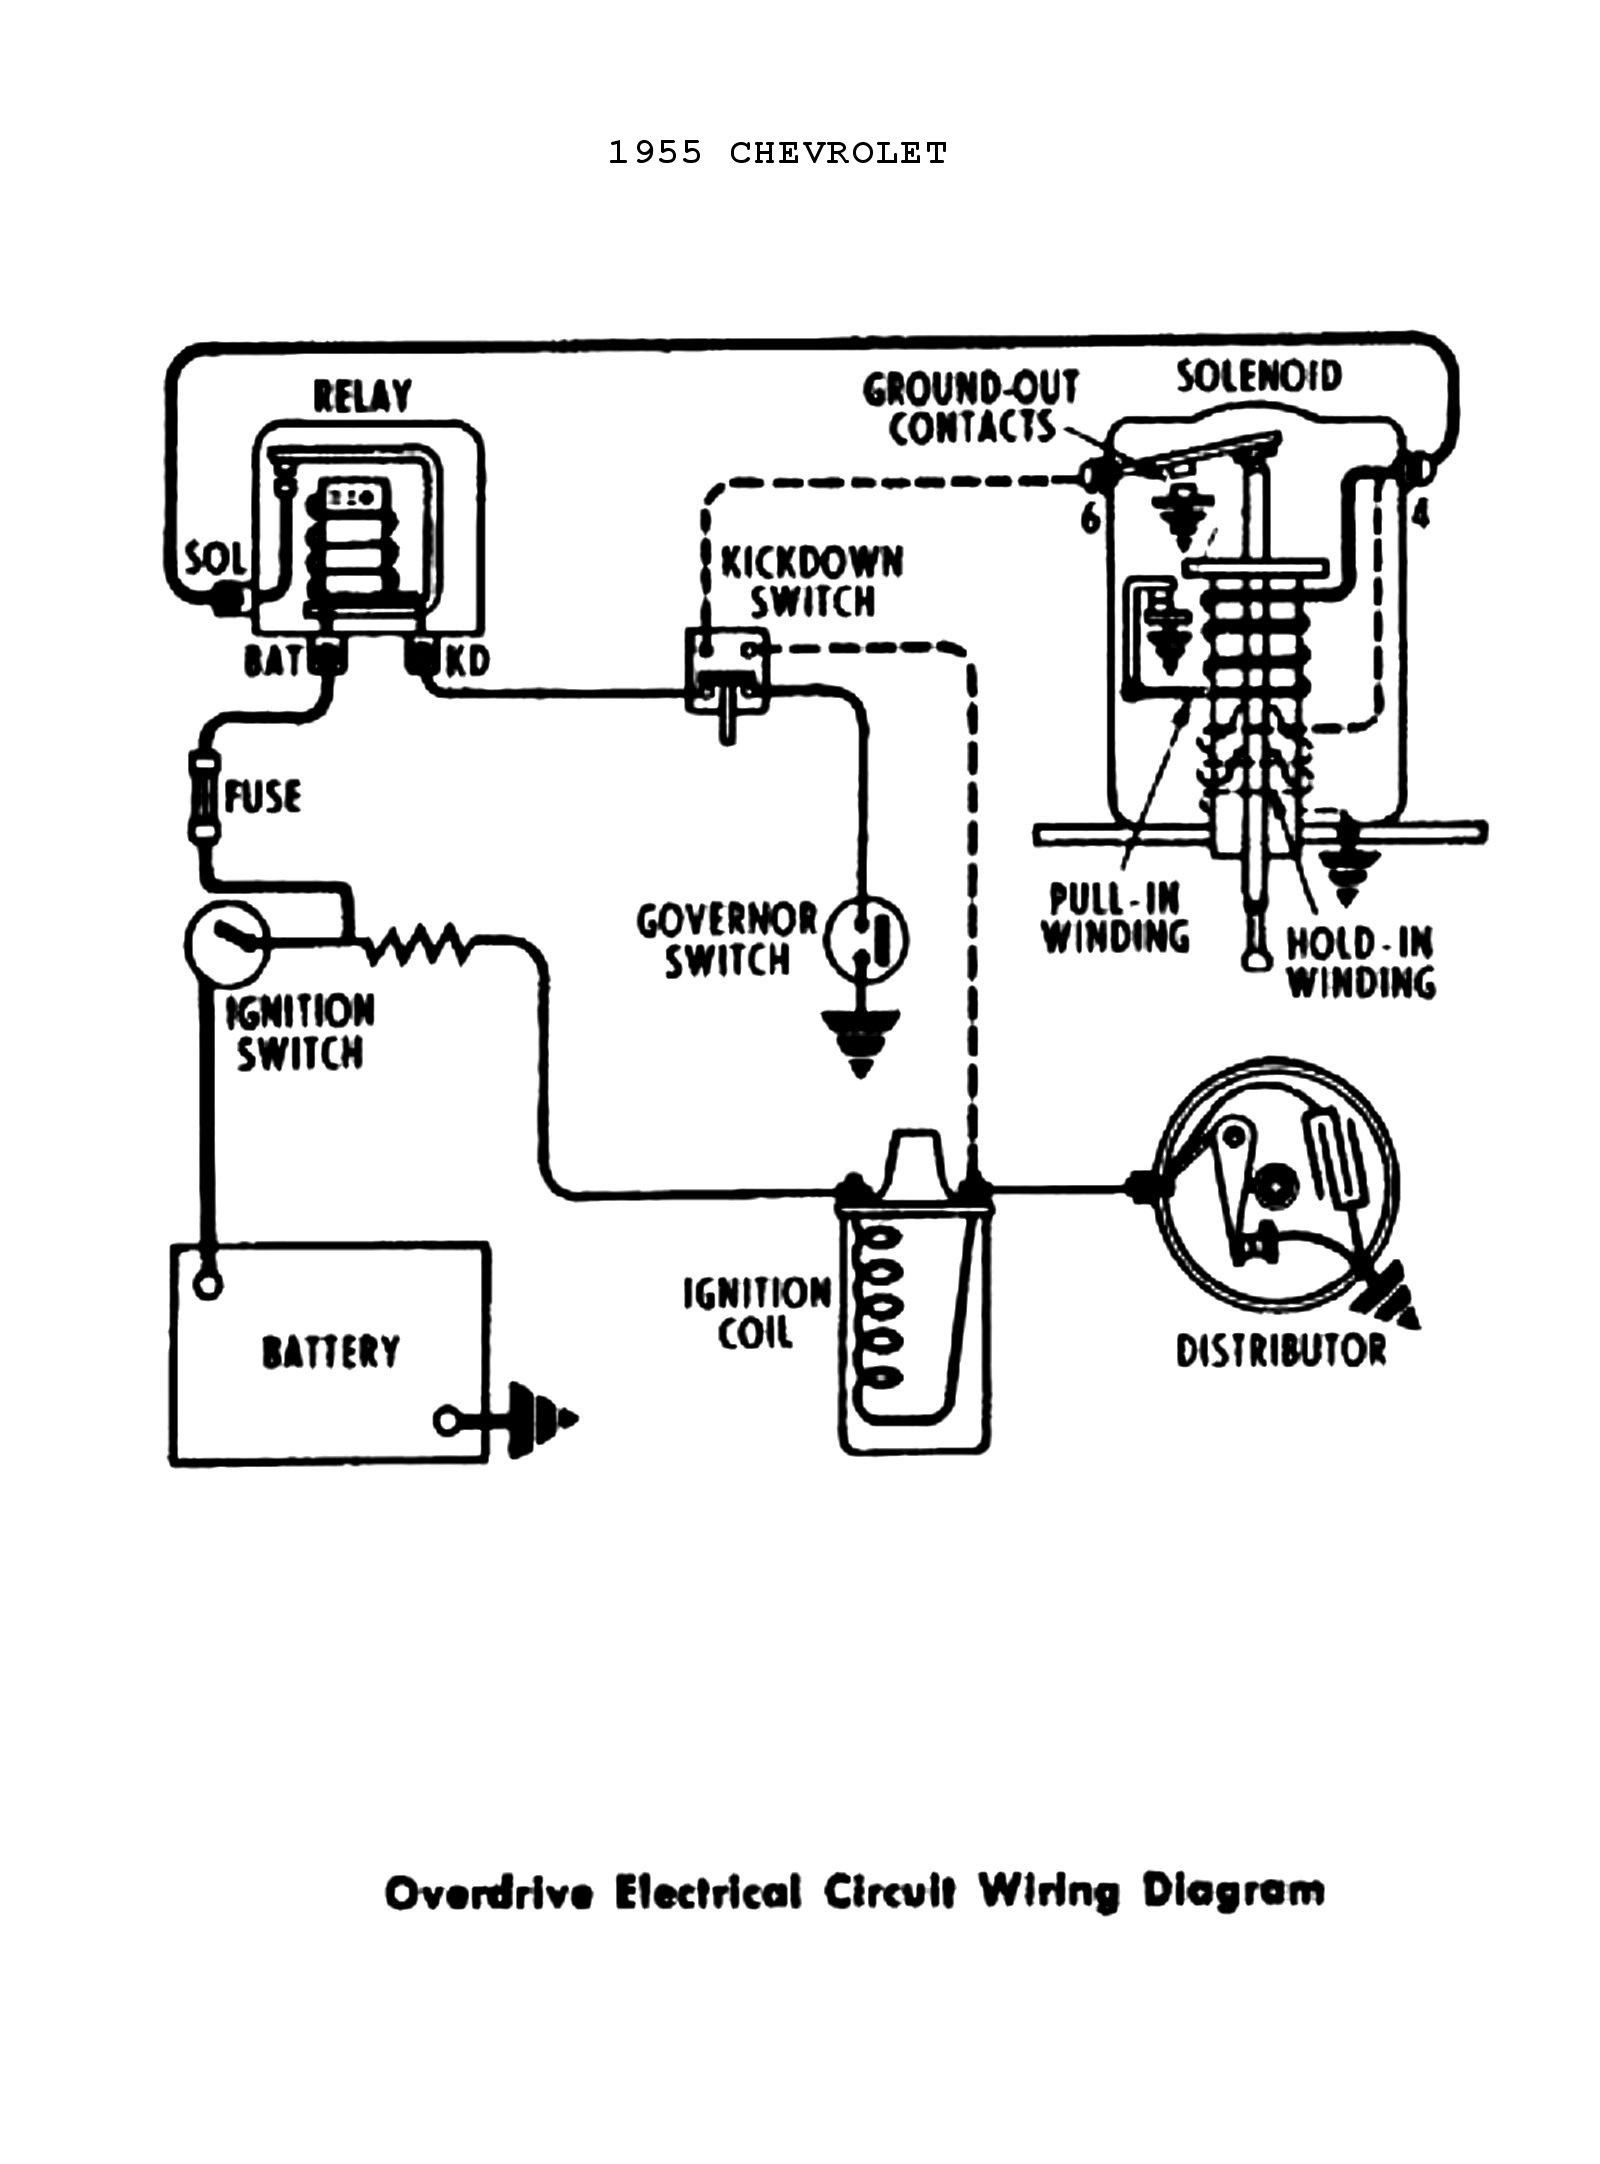 Unique Wiring Diagram For Car Door Lock Ignition Coil Ignite Ignition System